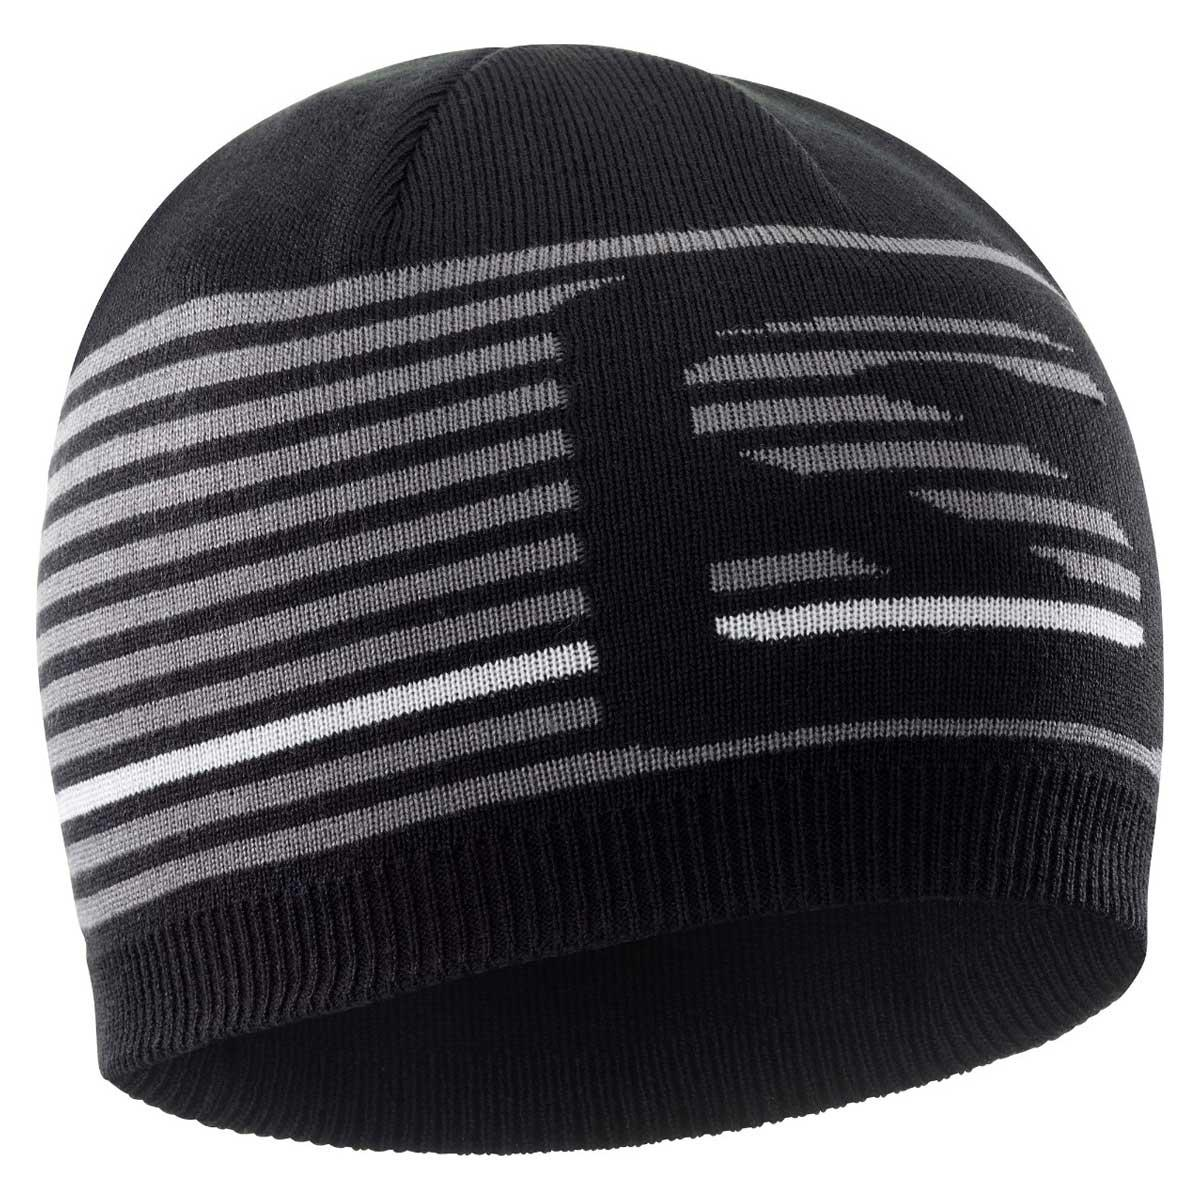 Salomon Flatspin Short Beanie in Black and Quiet Shade